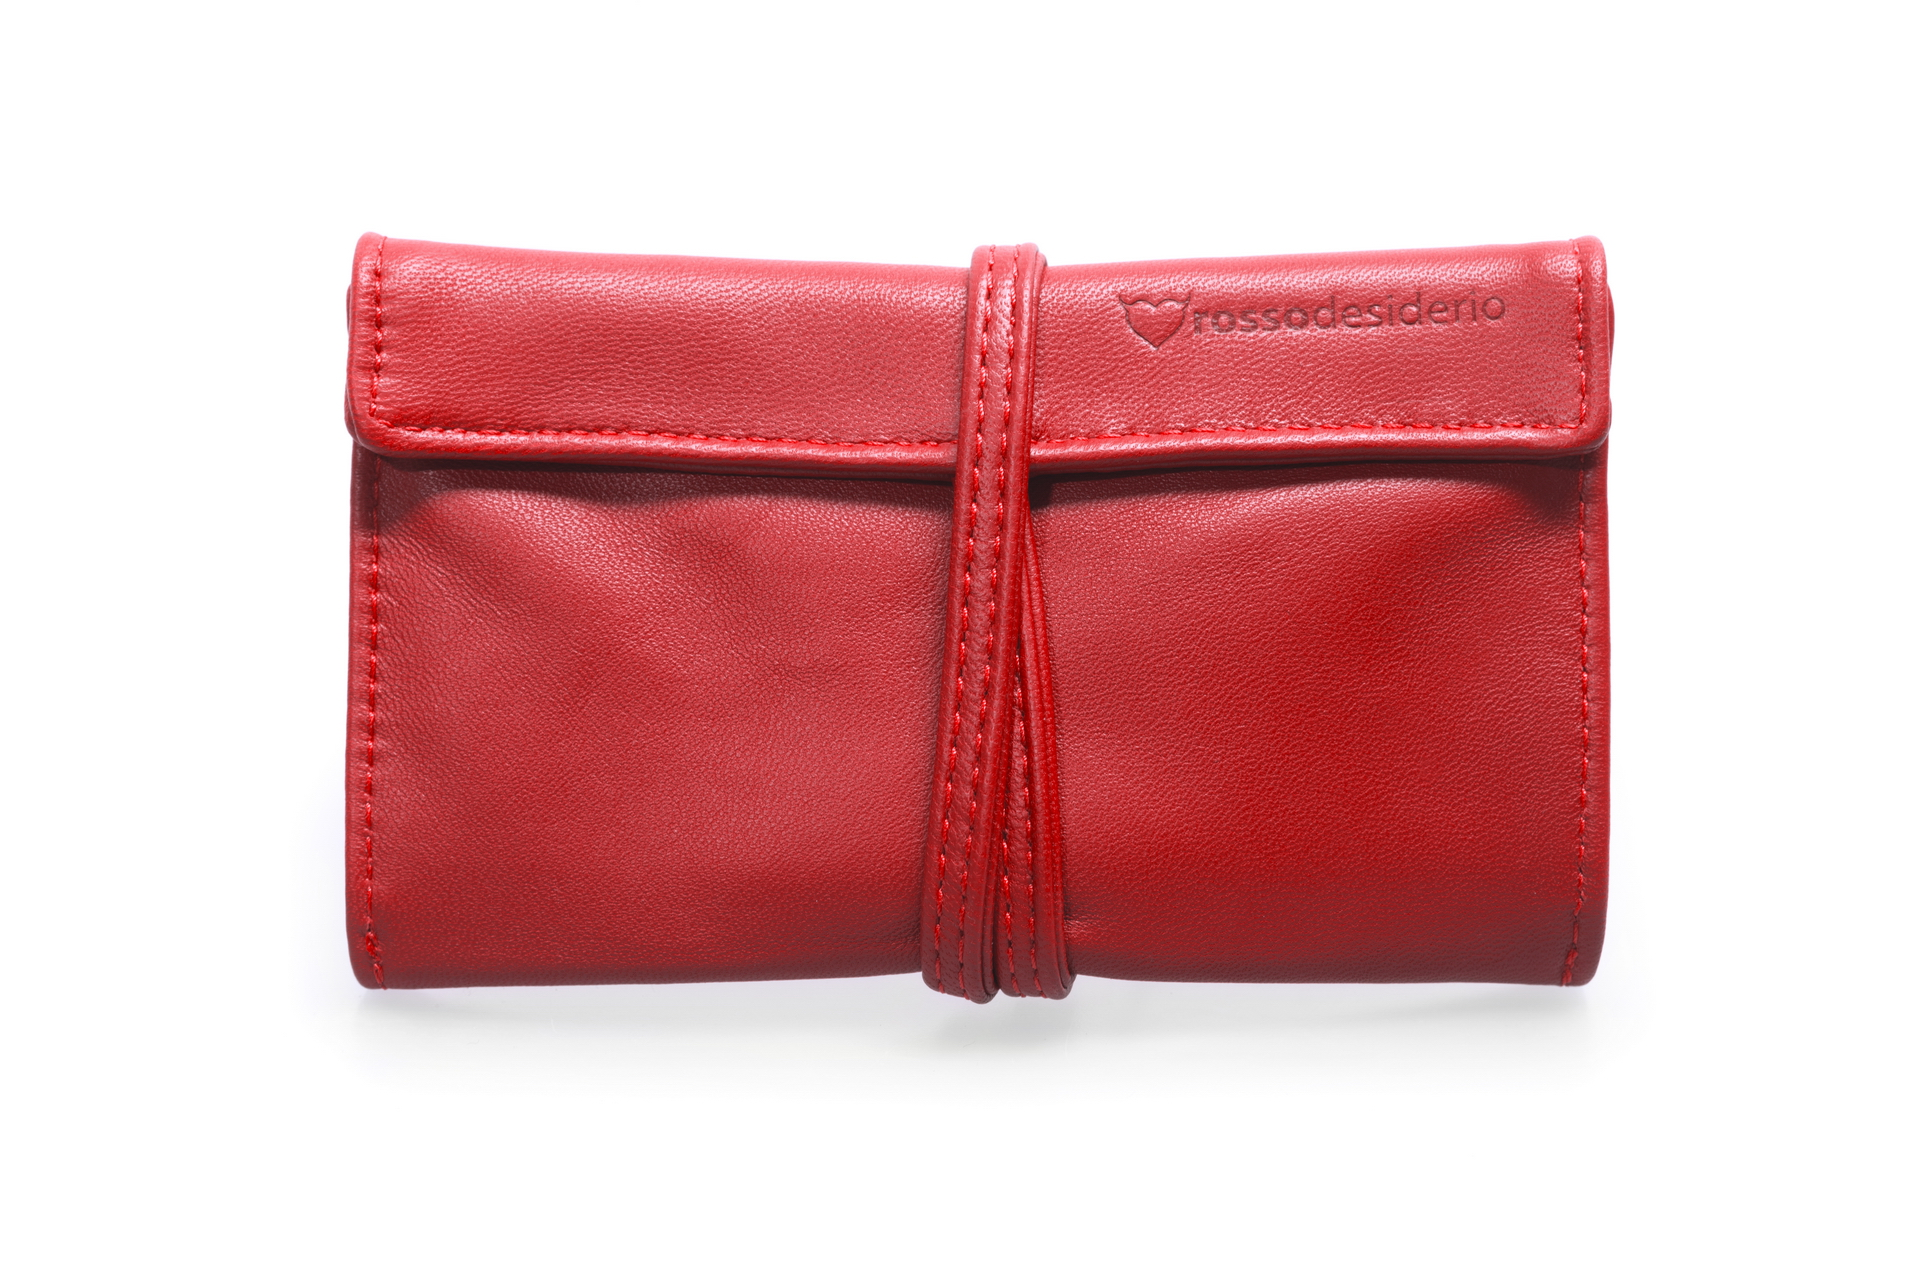 Real leather red tobacco pouch